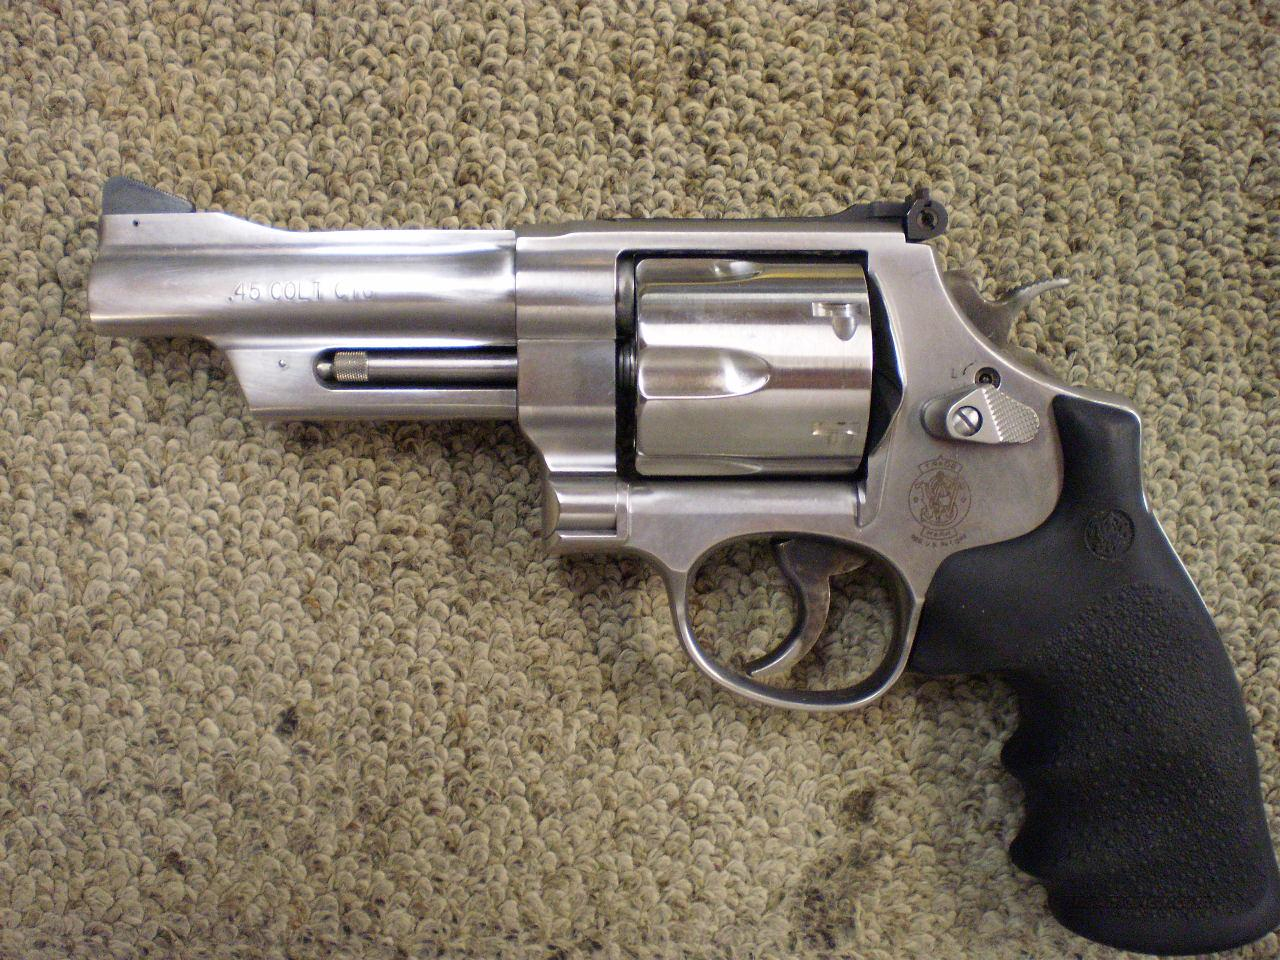 SMITH & WESSON 625-9 MOUNTAIN GUN  Guns > Pistols > Smith & Wesson Revolvers > Full Frame Revolver